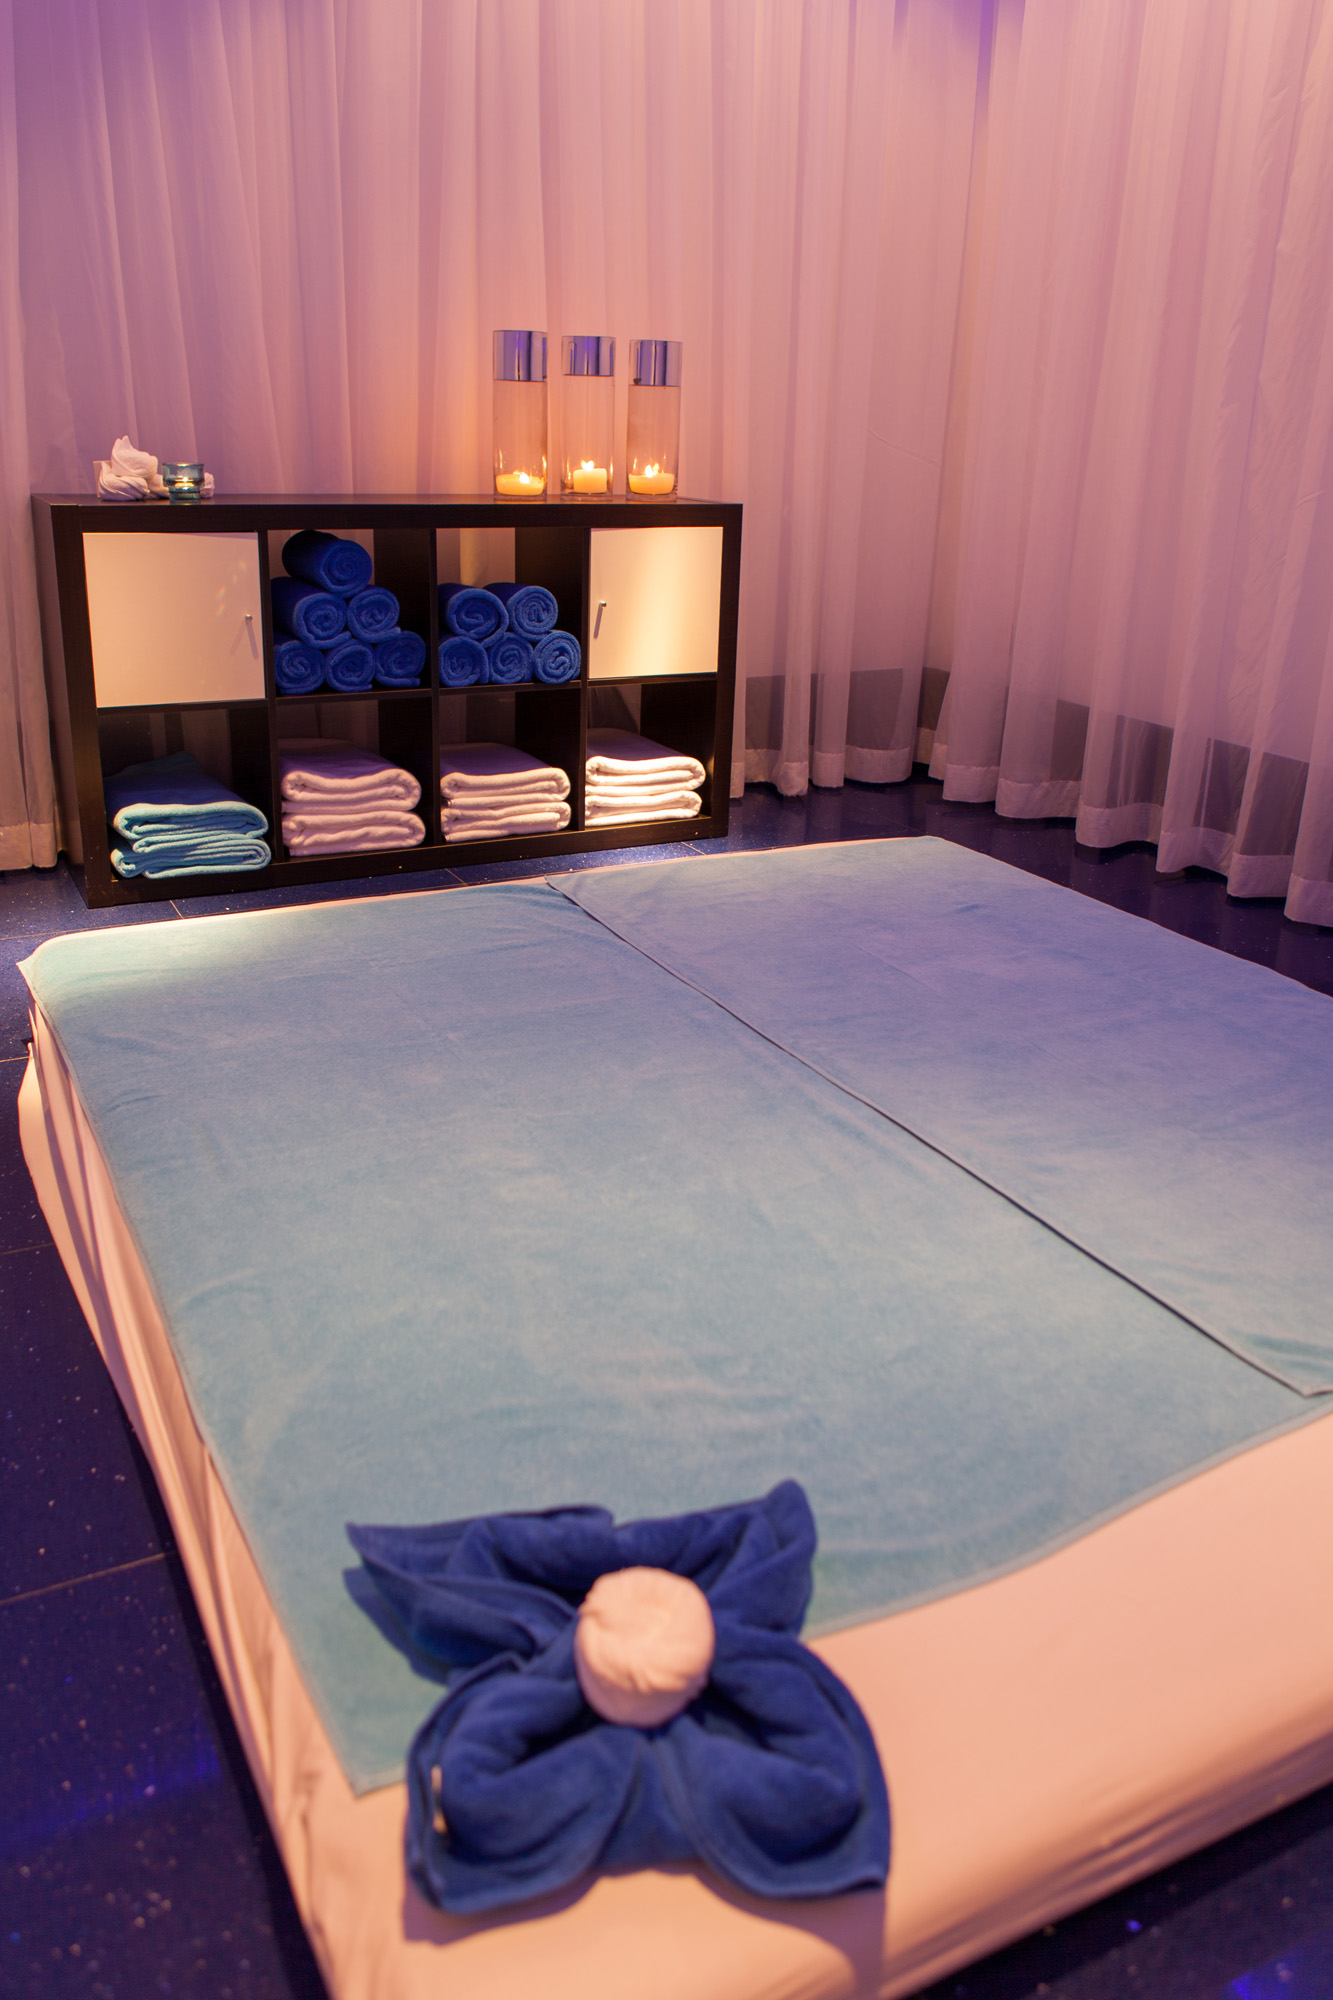 JA Ocean View Hotel - Calm Spa